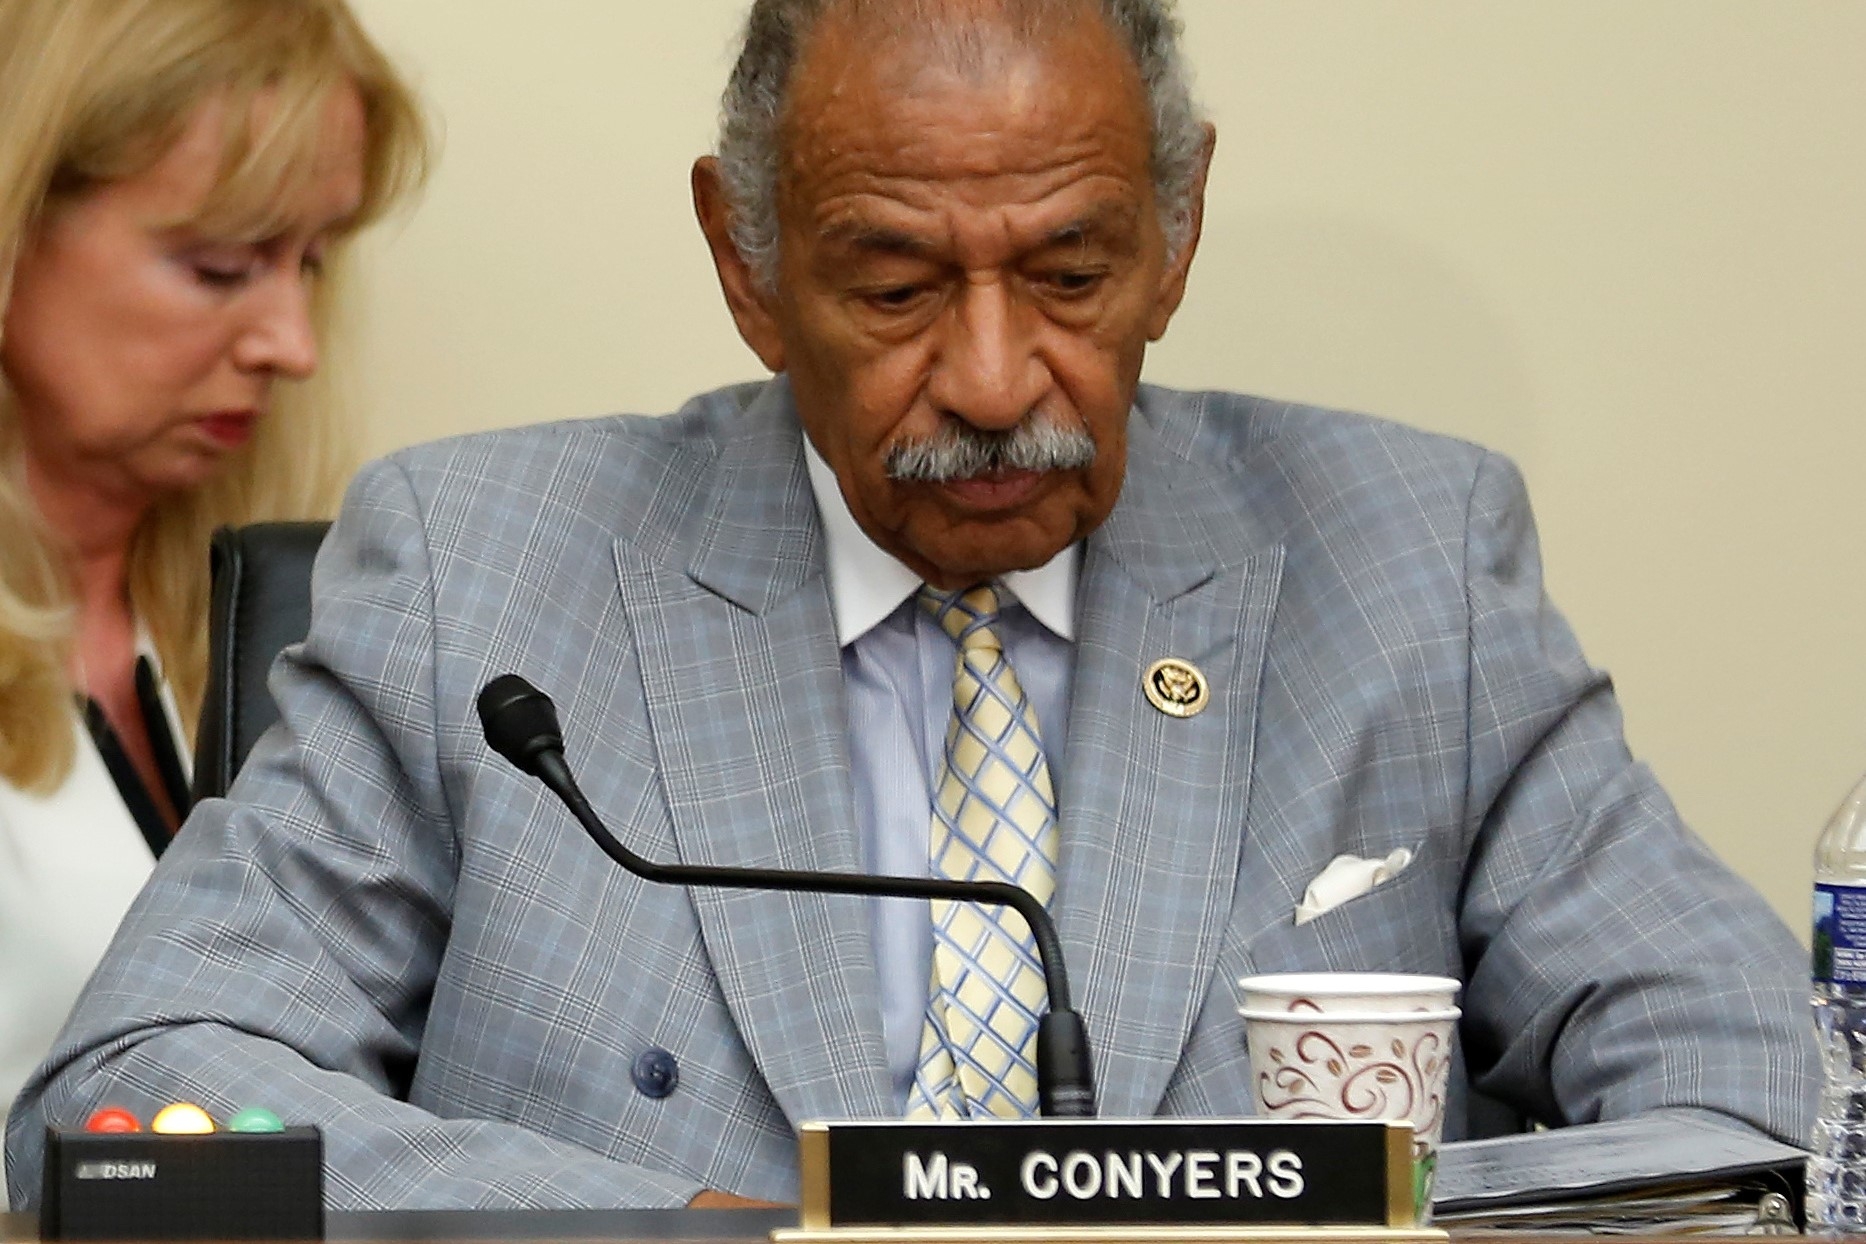 Senior Lawmaker Conyers Leaves US Congress After Harassment Accusations